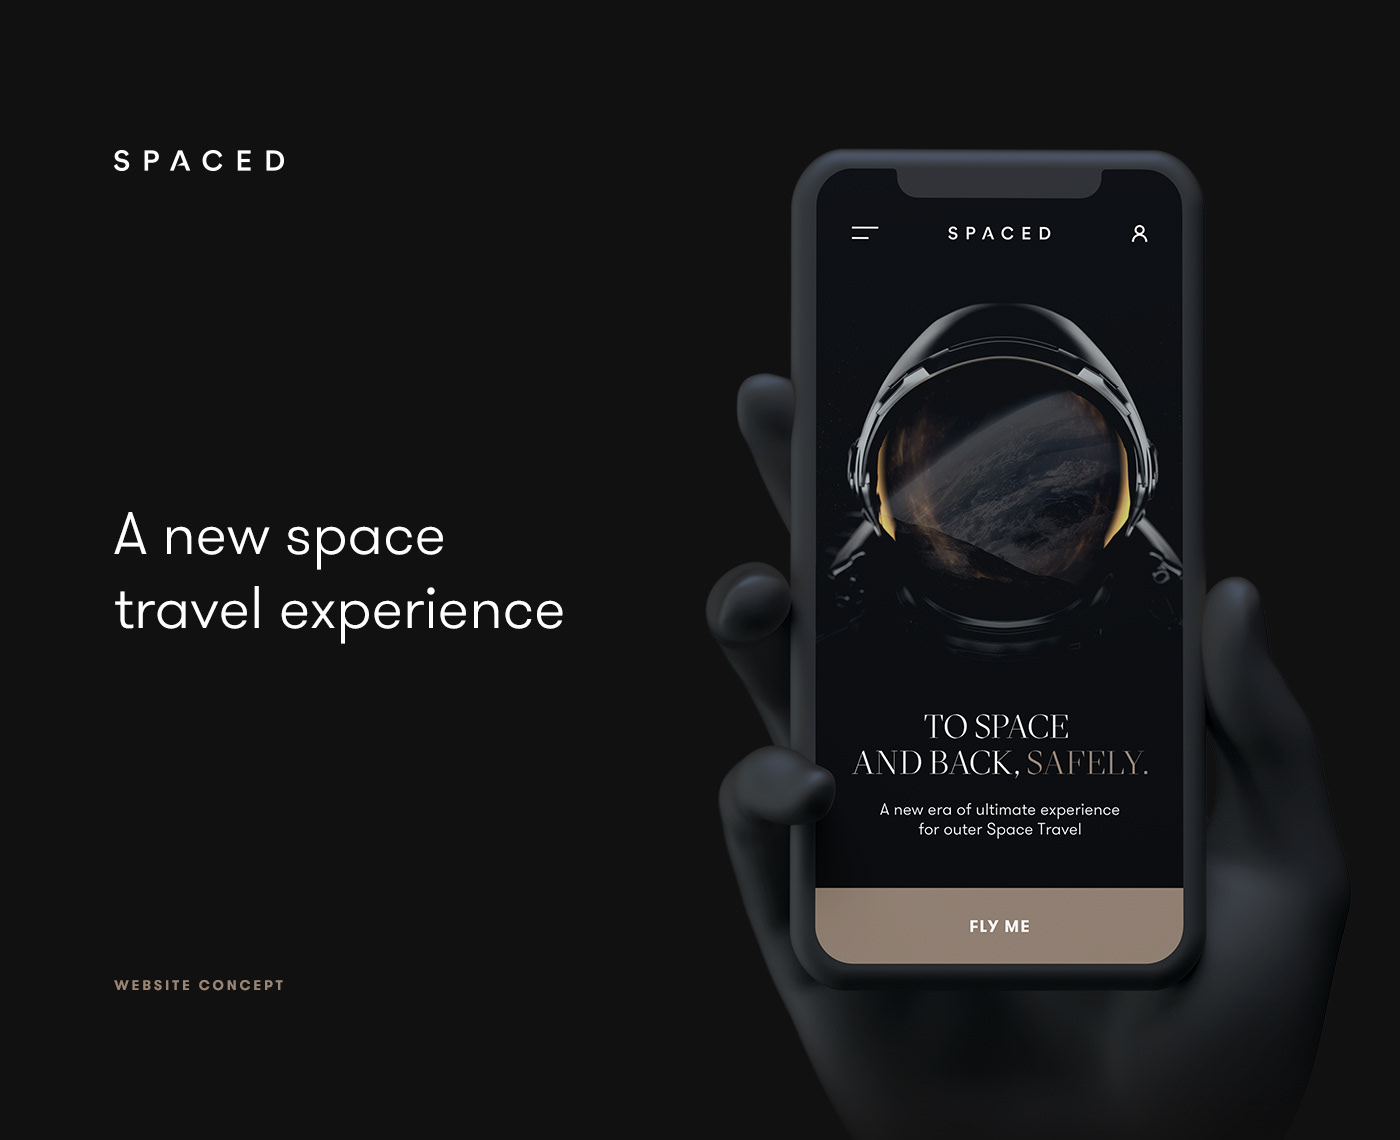 awesome elon Experience future high-end musk quick Space  spaced tech Ultimate